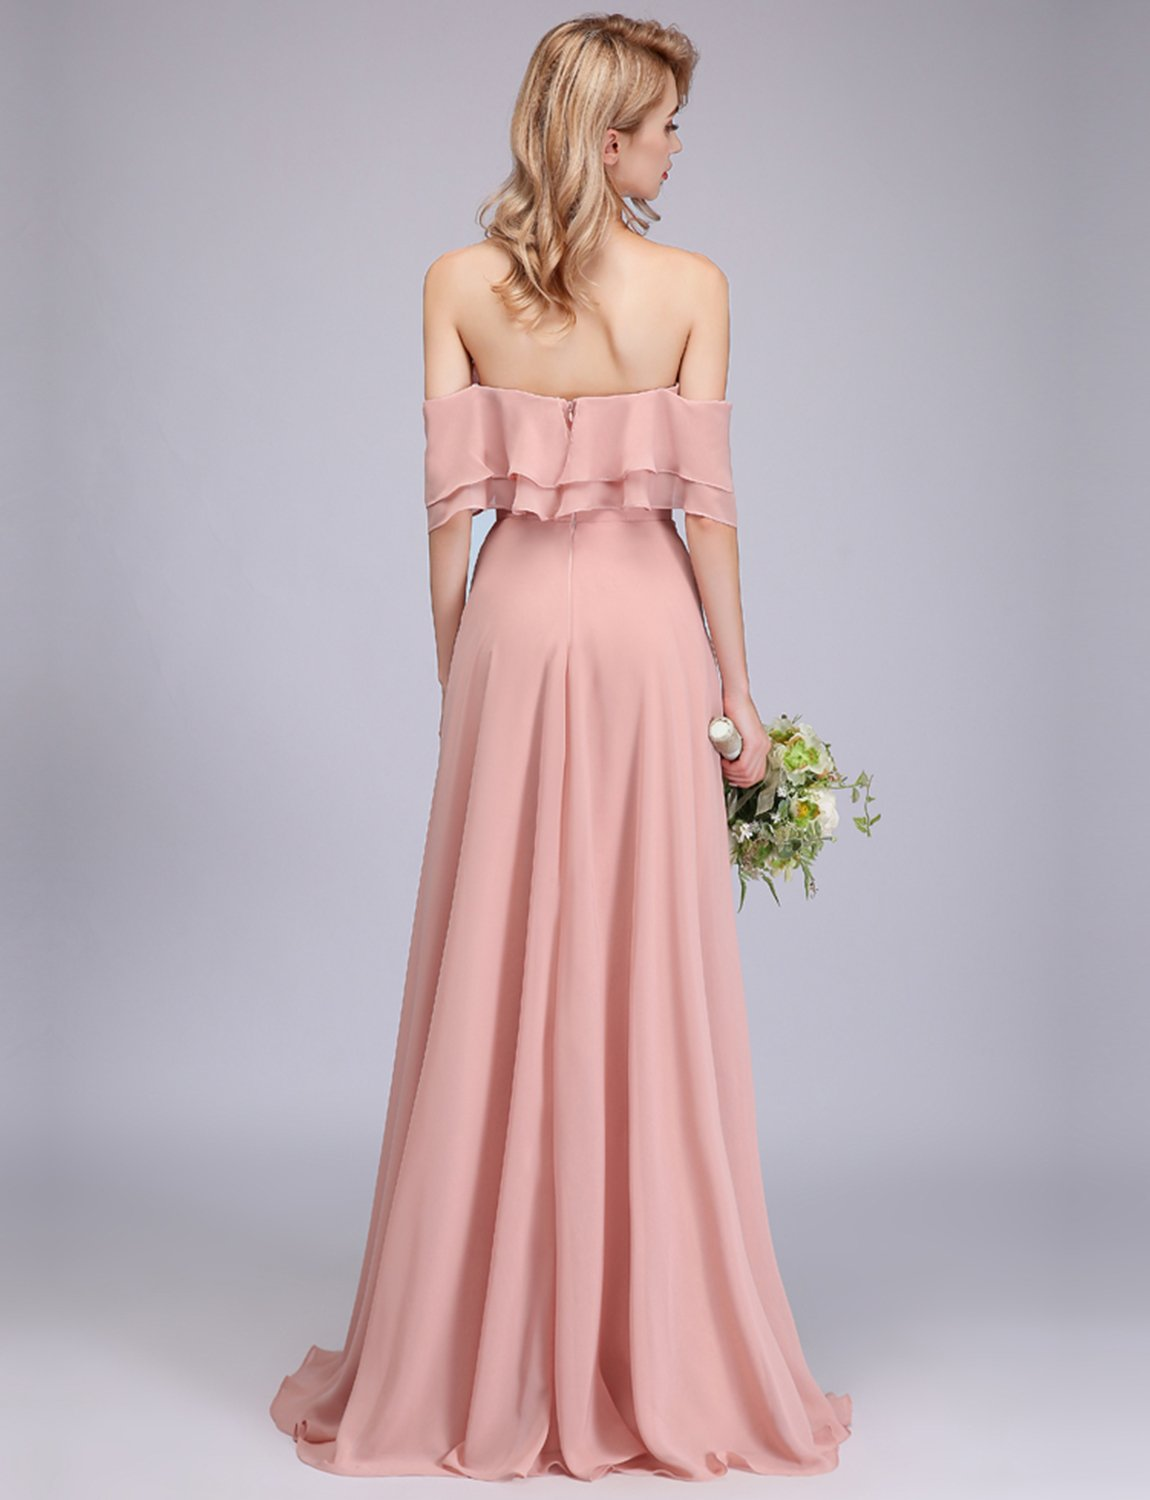 524d27481f45 ... Dresses/CLOTHKNOW Strapless Chiffon Bridesmaid Dresses Long Blush with Shoulder  Ruffles for Women Girls to Wedding Party Gowns. ; 